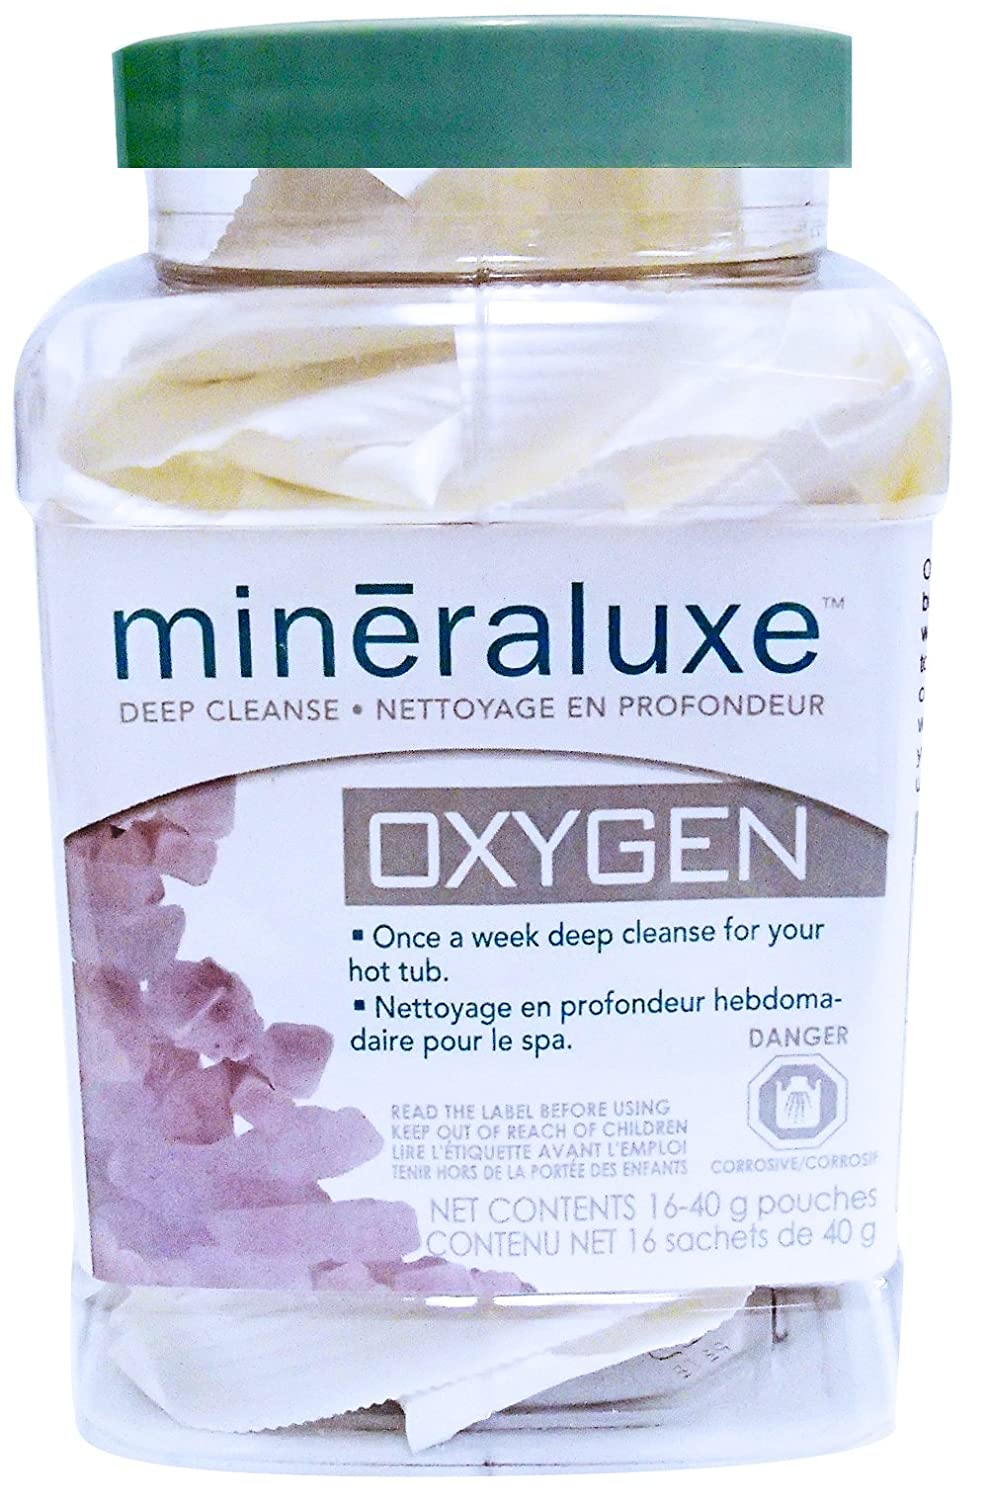 Mineraluxe Oxygen ( 5 , 16 or 96 size pre-measured 40g sachets ) (16, container of 16 ( 40 gr ) packets) west backyard brand